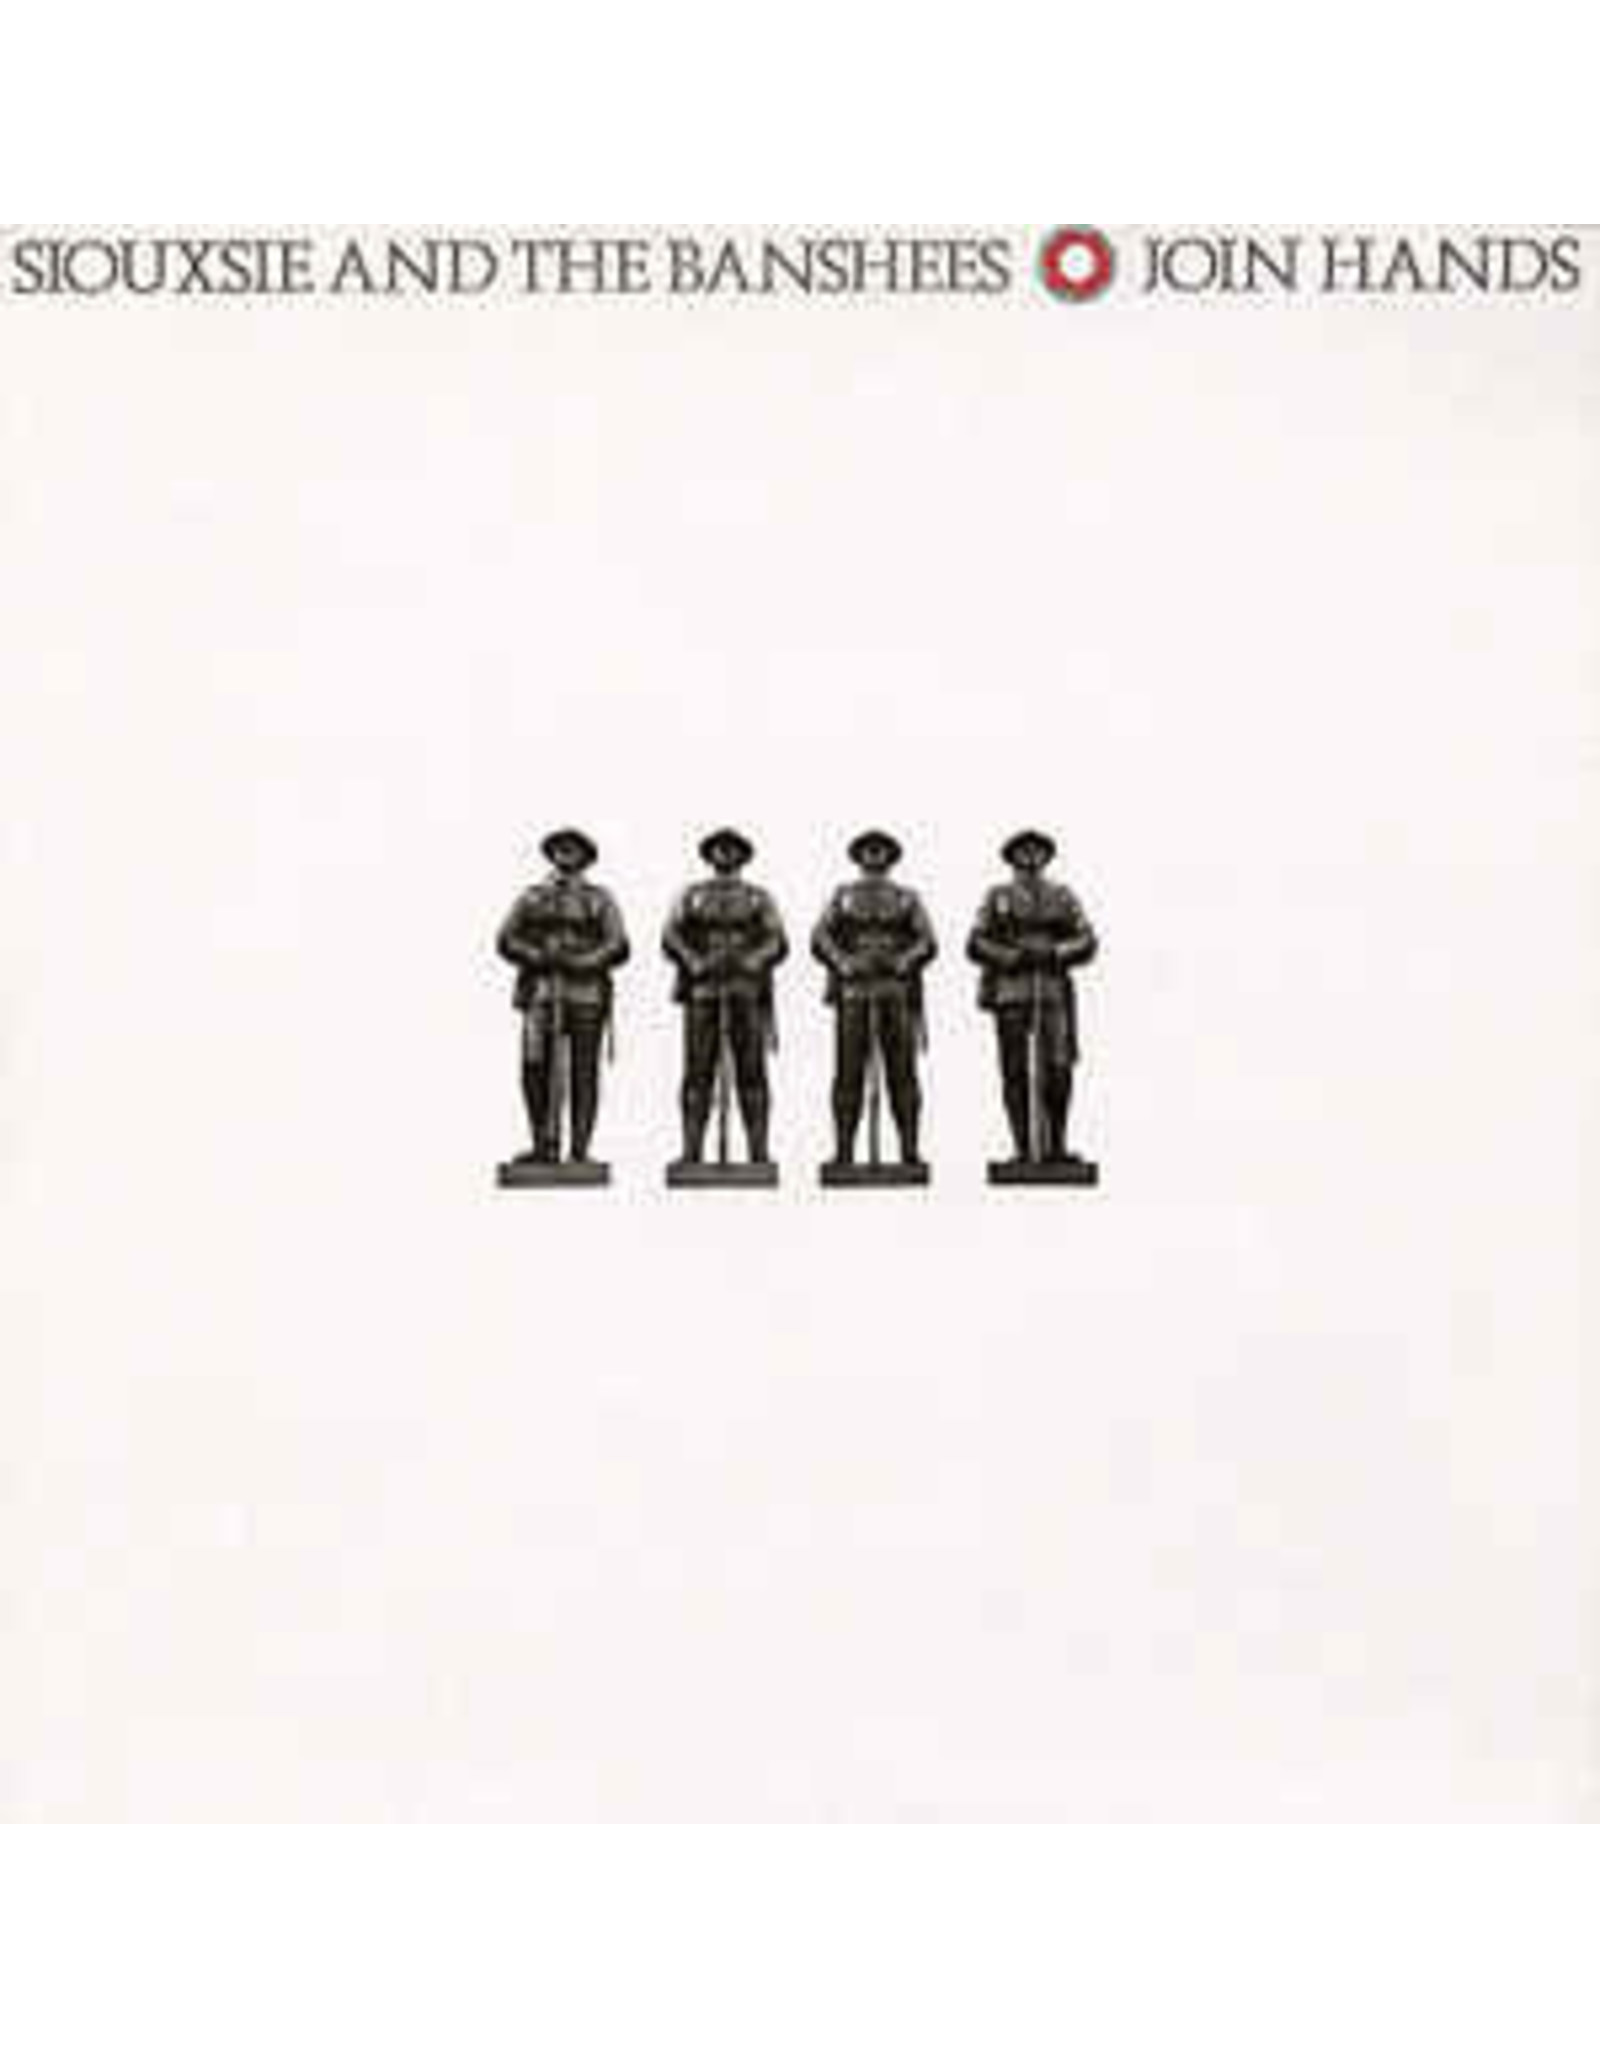 New Vinyl Siouxsie & The Banshees - Join Hands LP